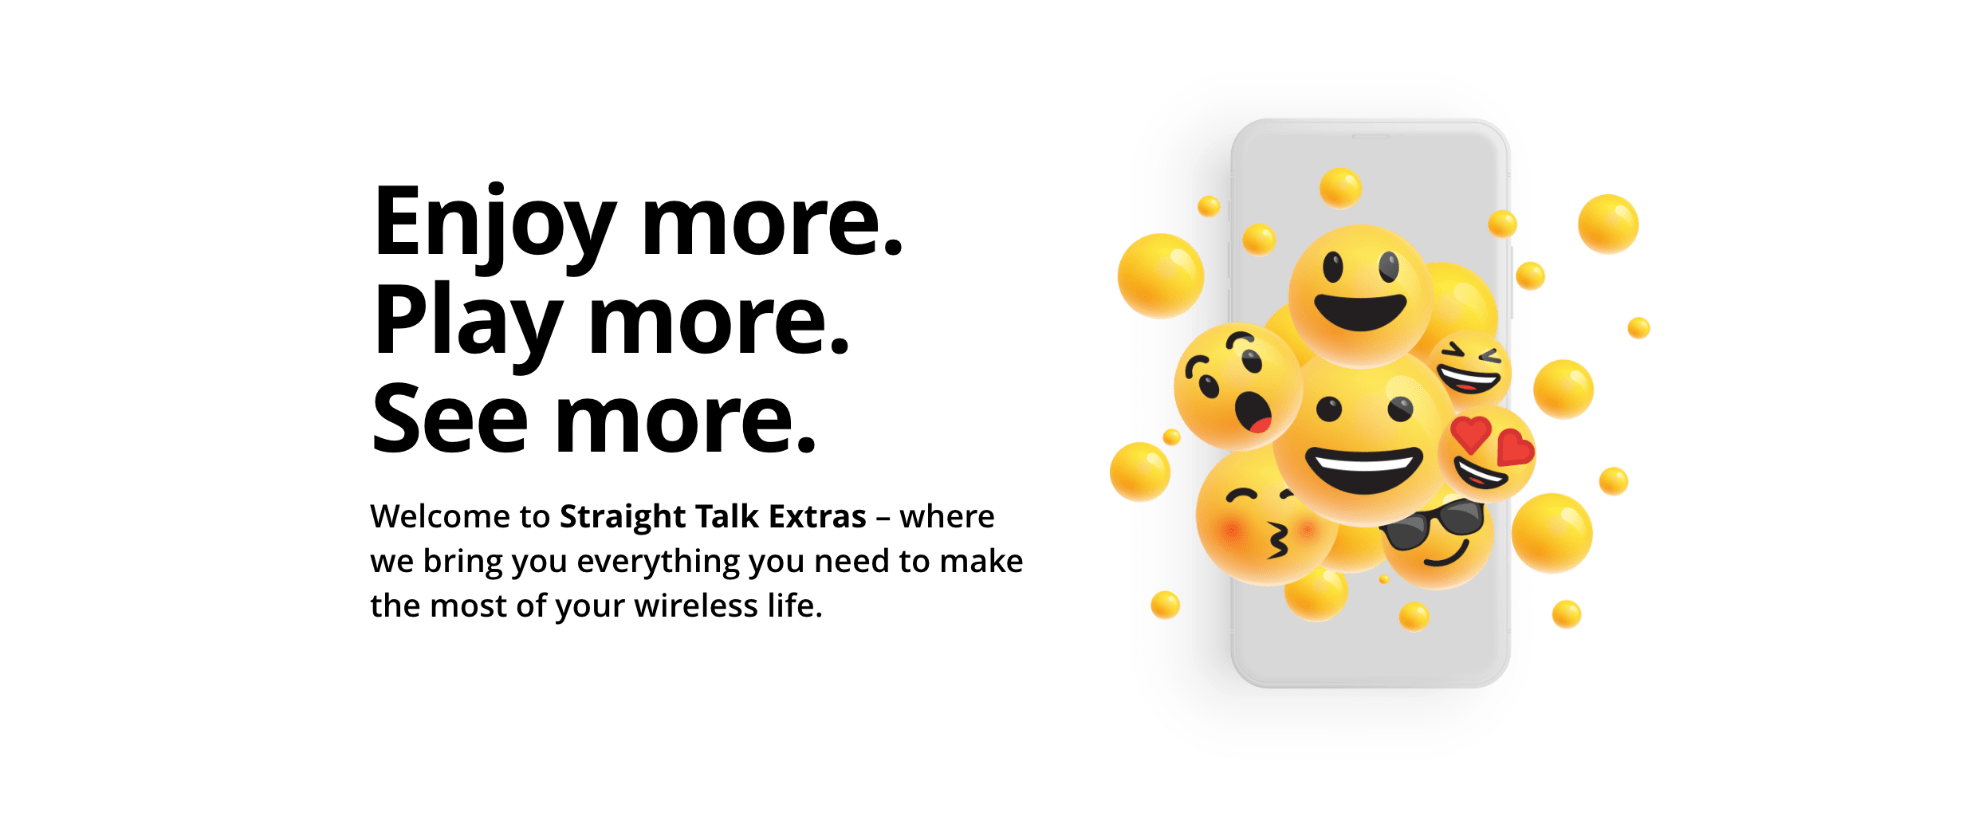 Enjoy more. play more. see more. Welcome to Straight Talk Extras - where we bring you everythign you need to make the most of your wireless life.